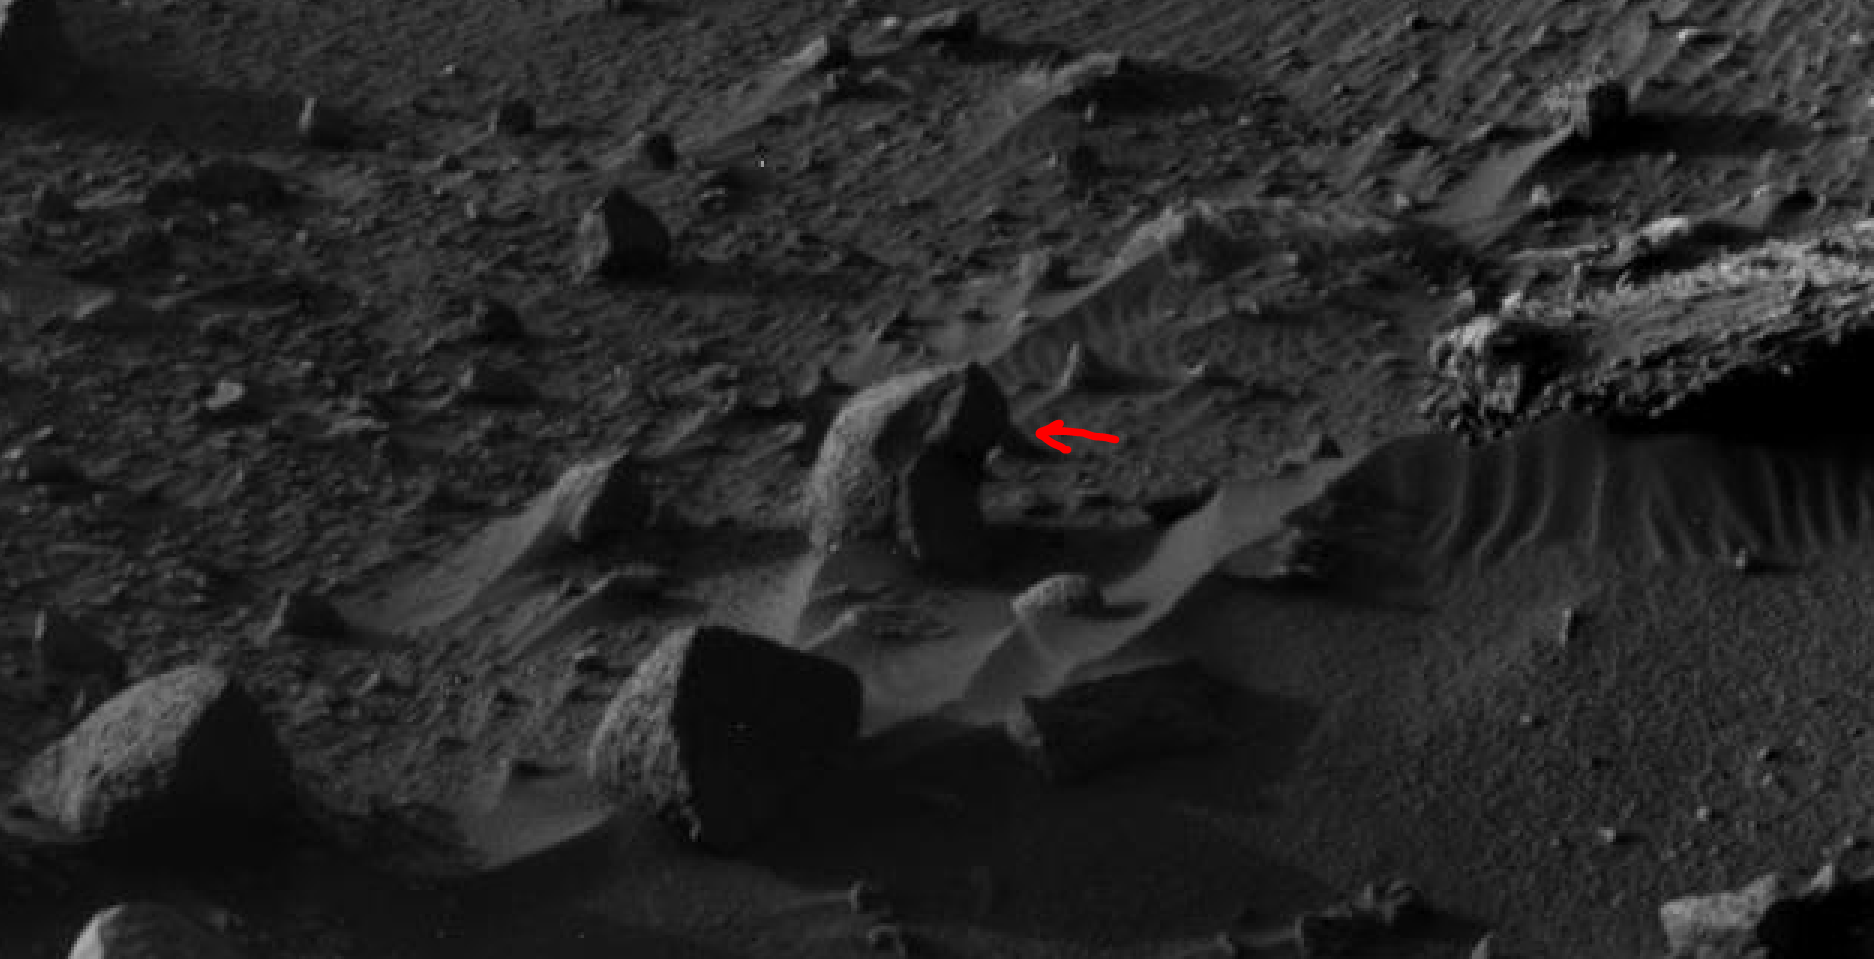 mars sol 1405 anomaly artifacts 19 was life on mars